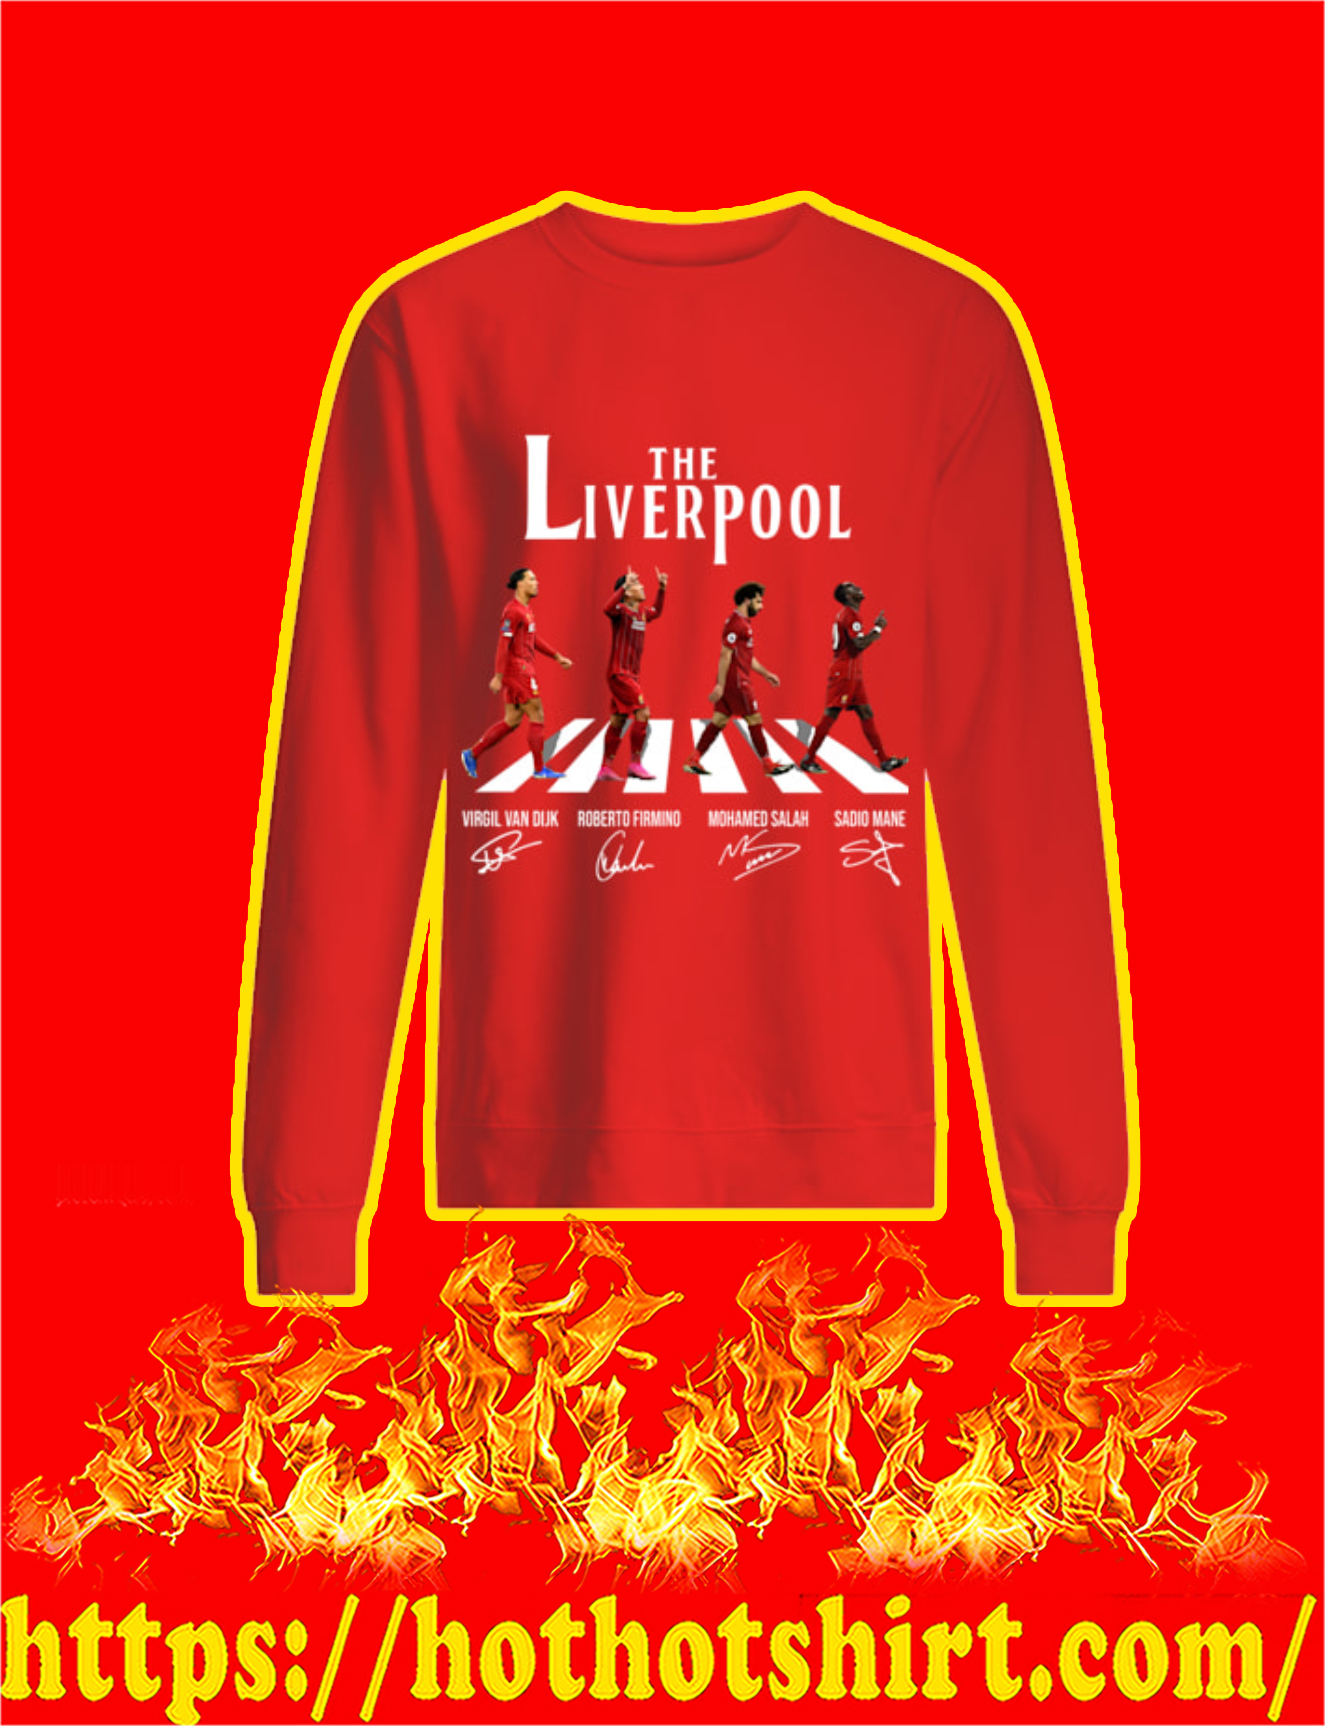 The Liverpool Abbey Road Players Signature Sweatshirt